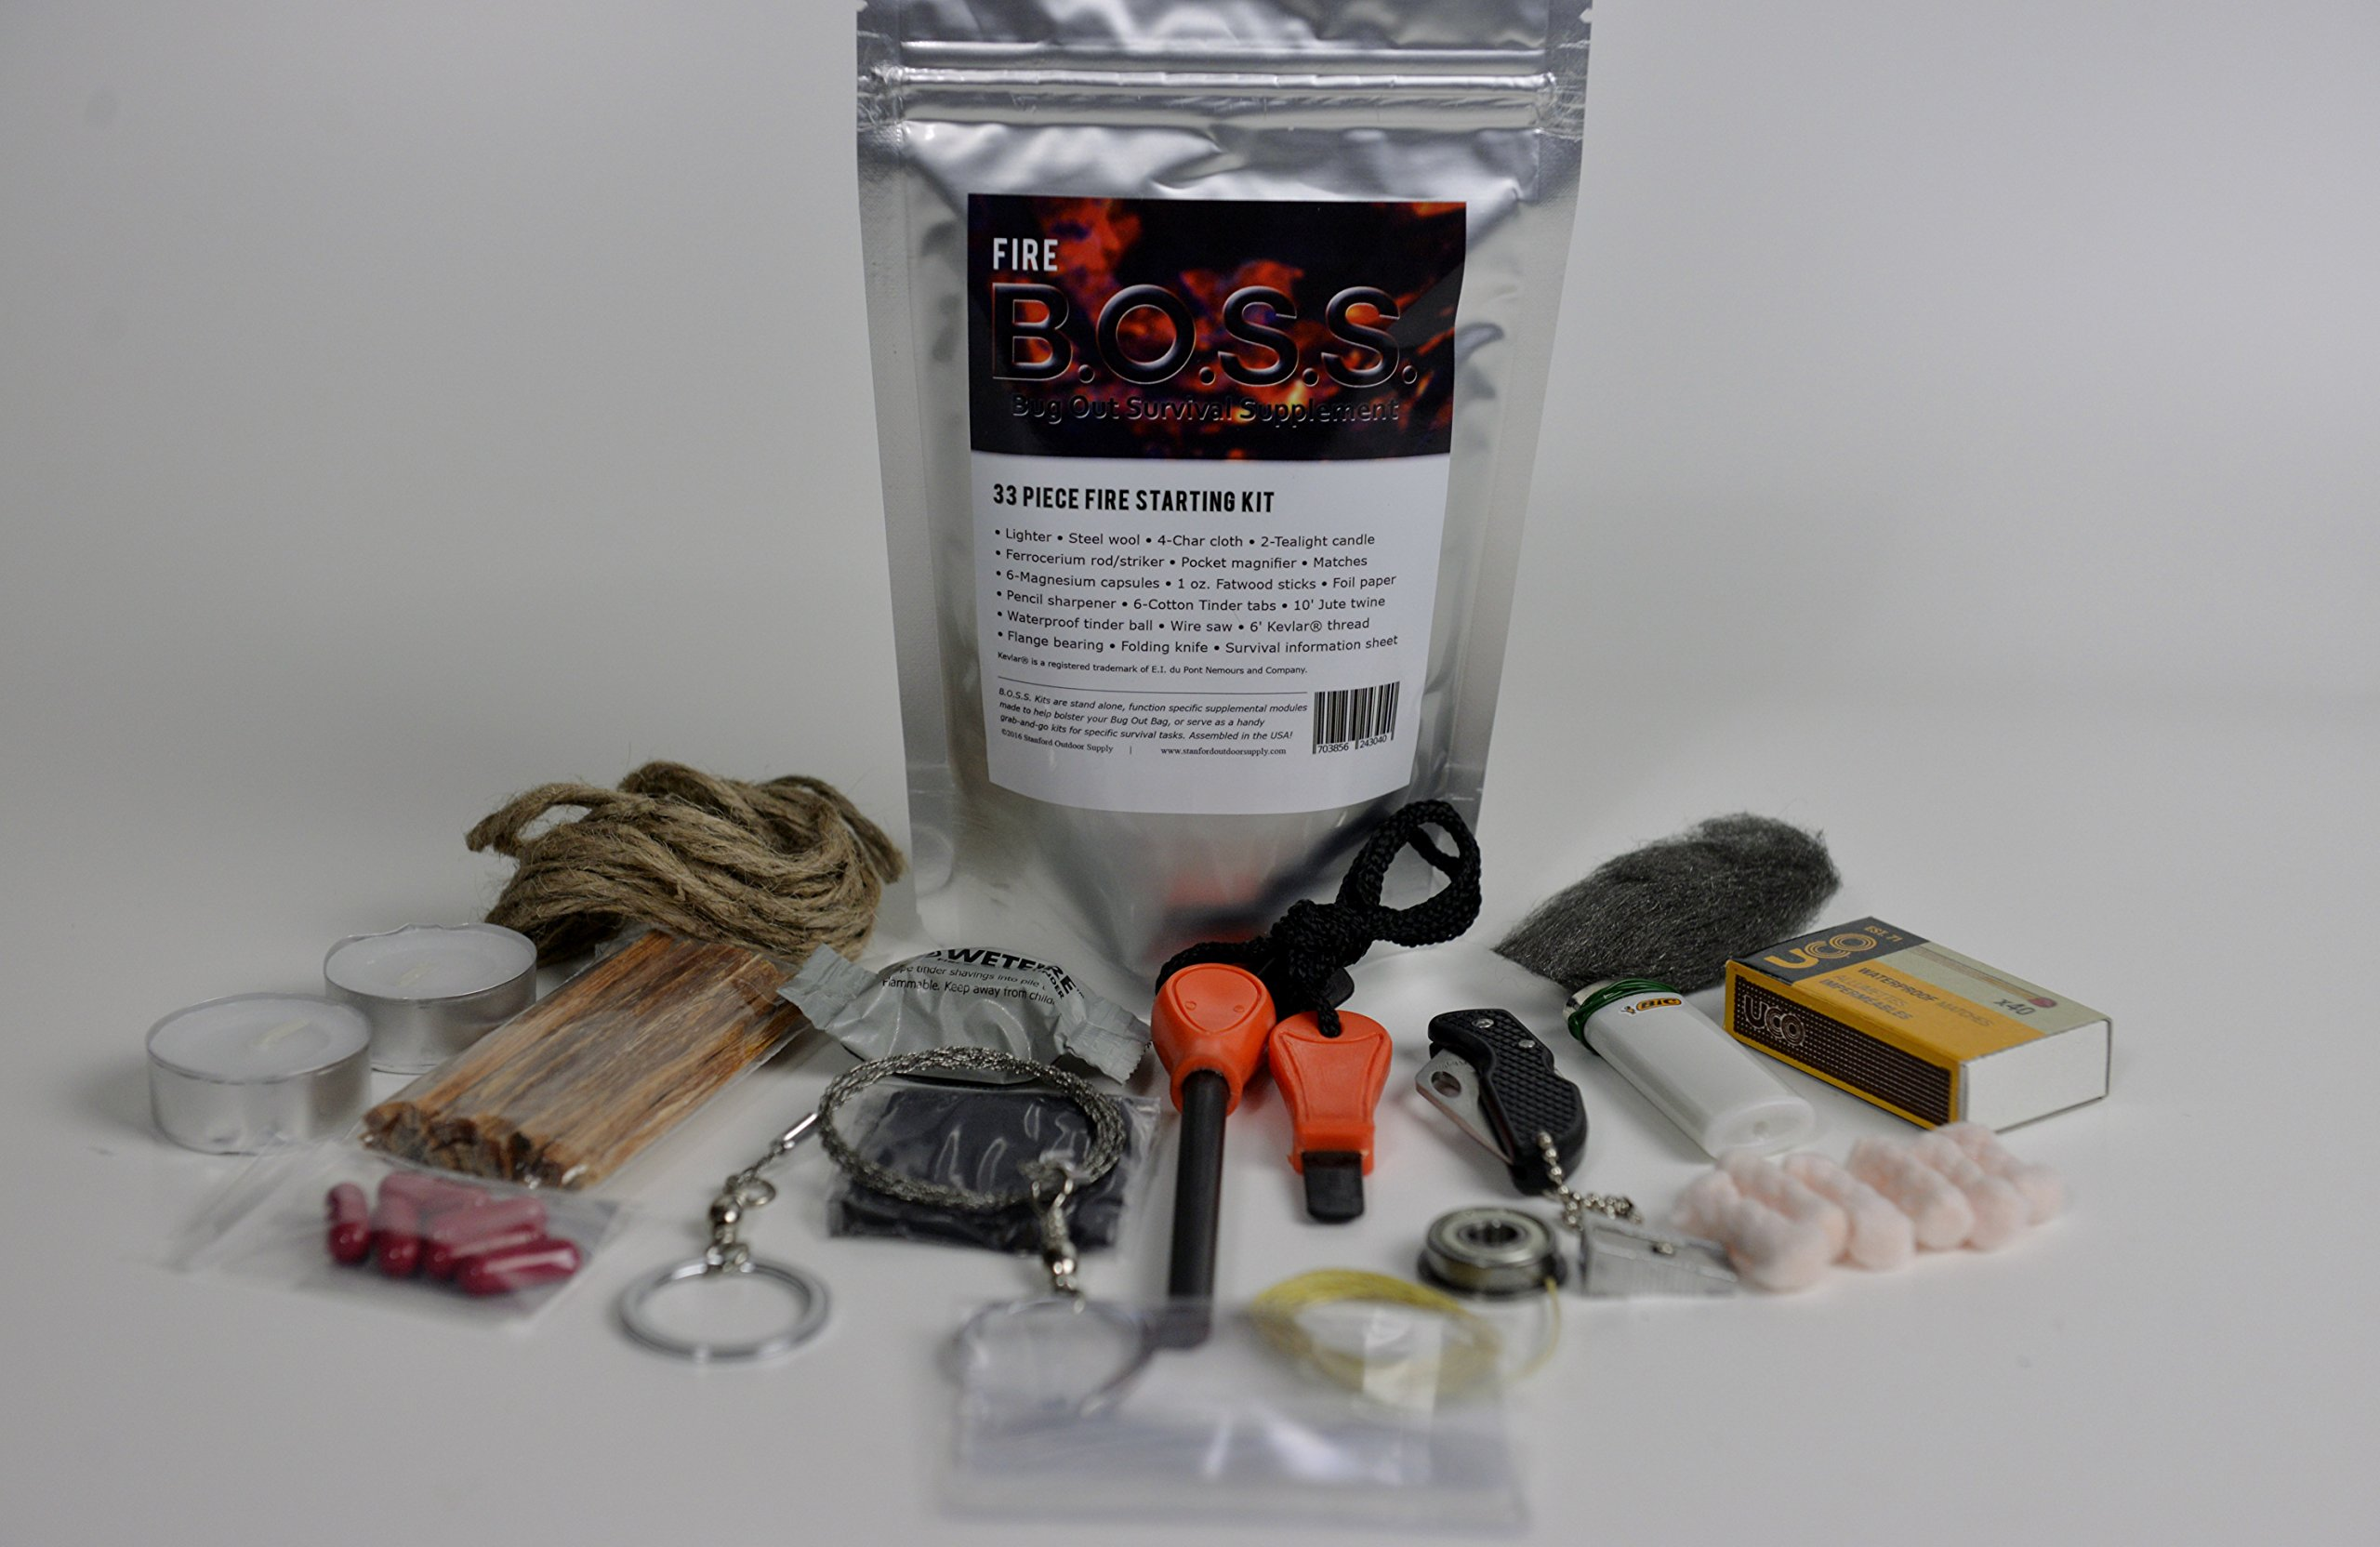 Fire B.O.S.S.- Bug Out Bag Survival Fire Starting Kit